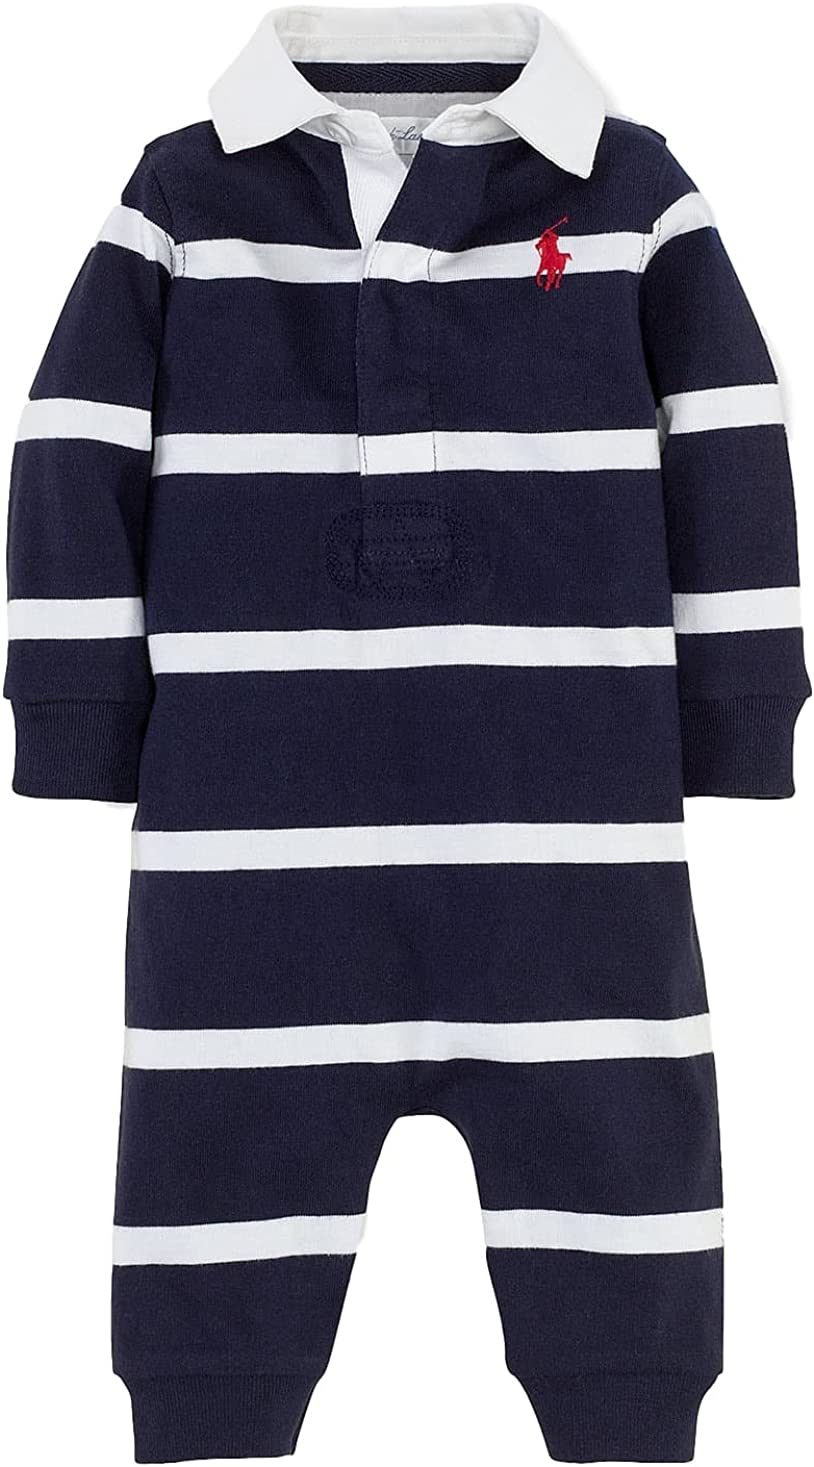 The Best Ralph Lauren Newborn Take Me Home Set